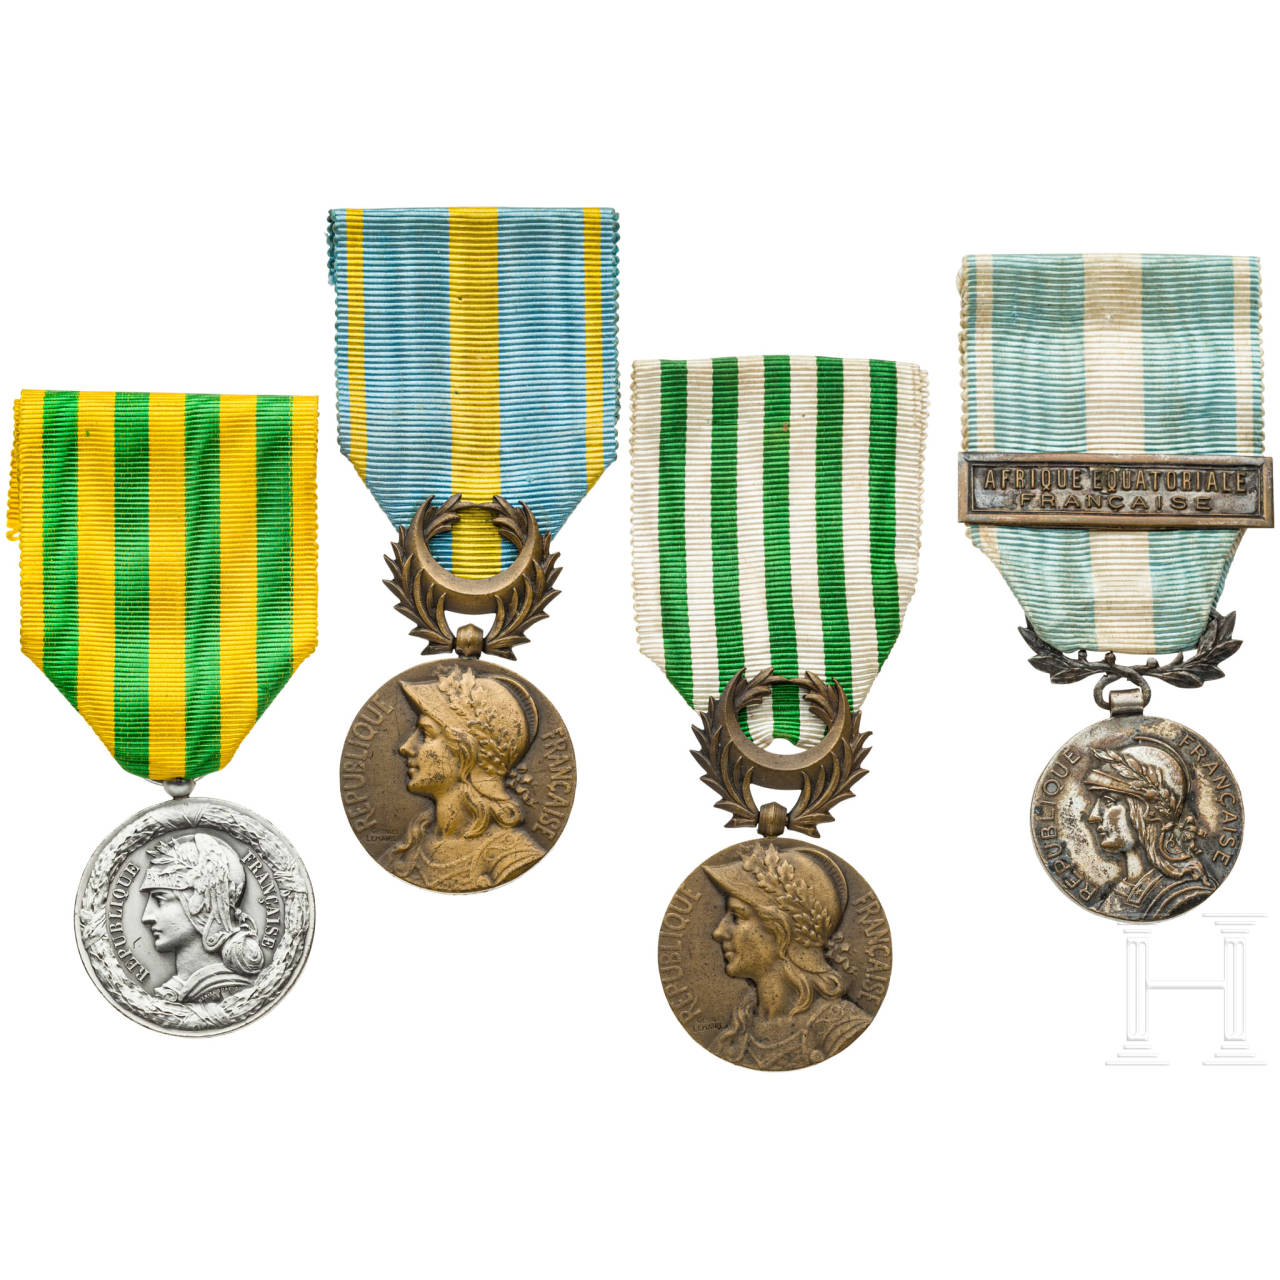 Four colonial medals, France, 19th / 20th century